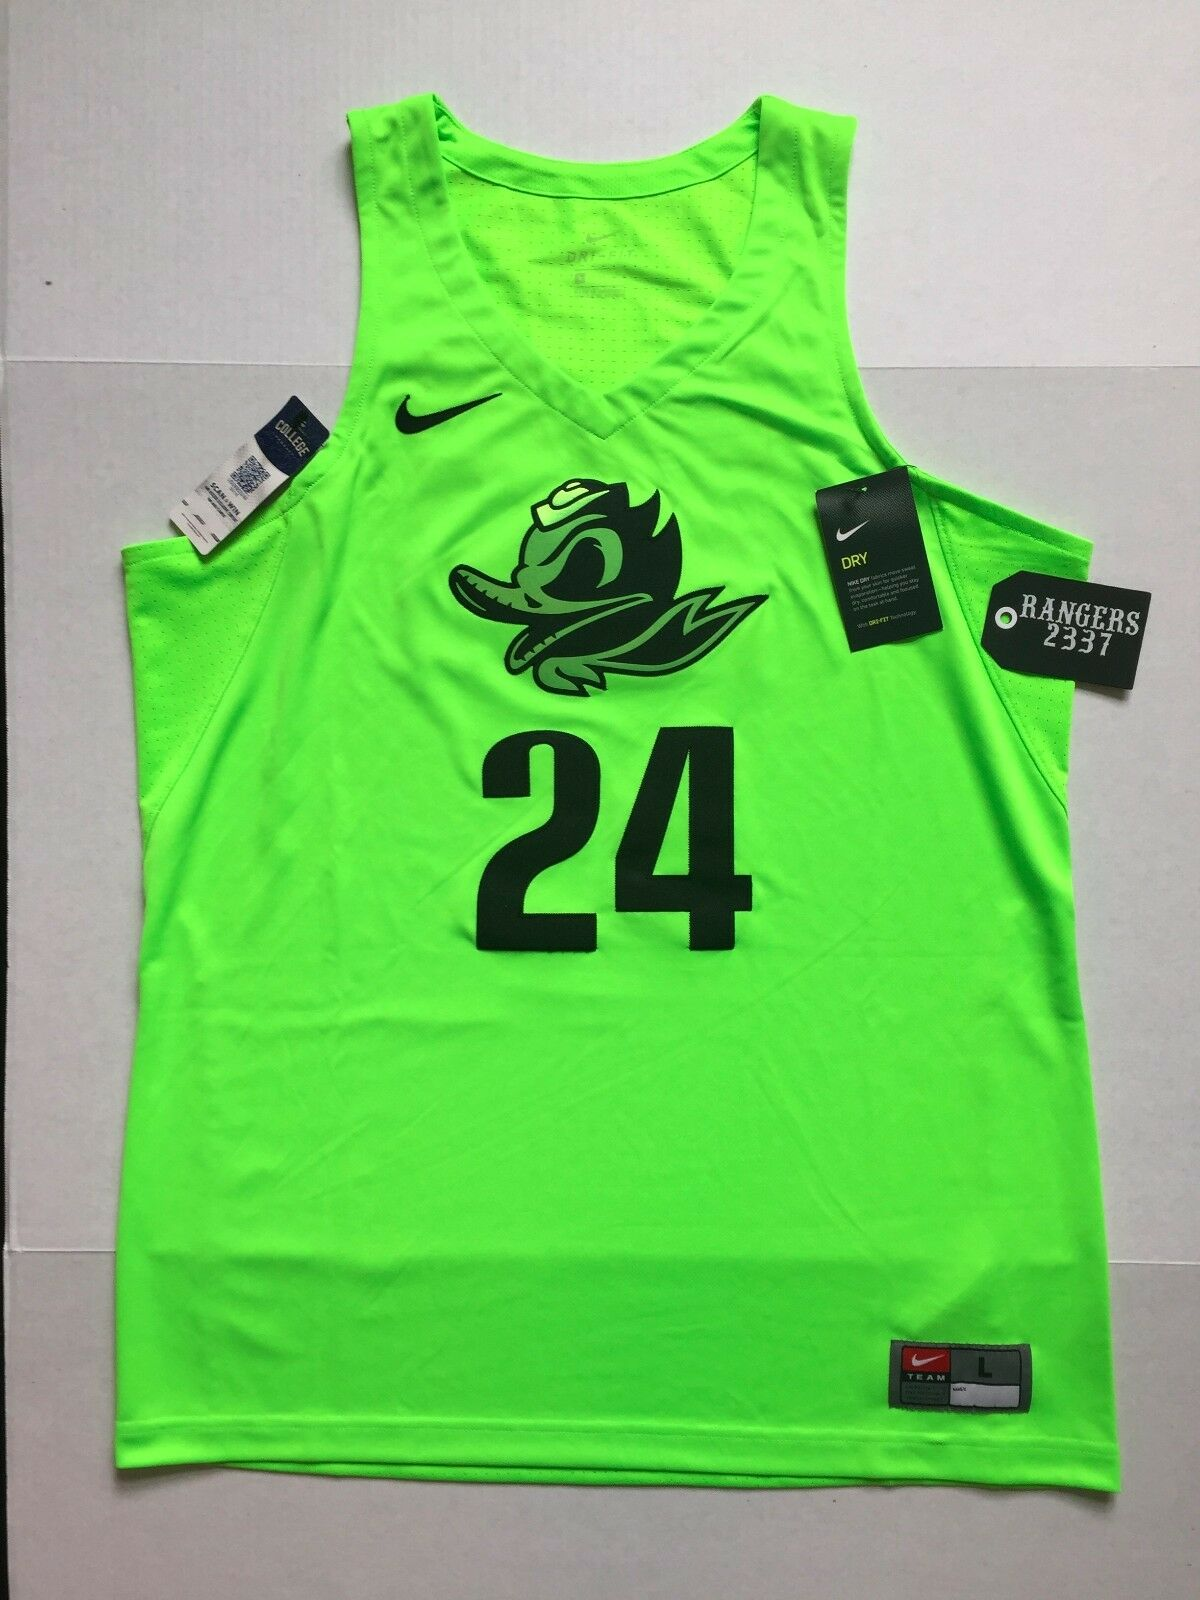 Nike Oregon Ducks Basketball Jersey Stitched 24 Authentic Fighting